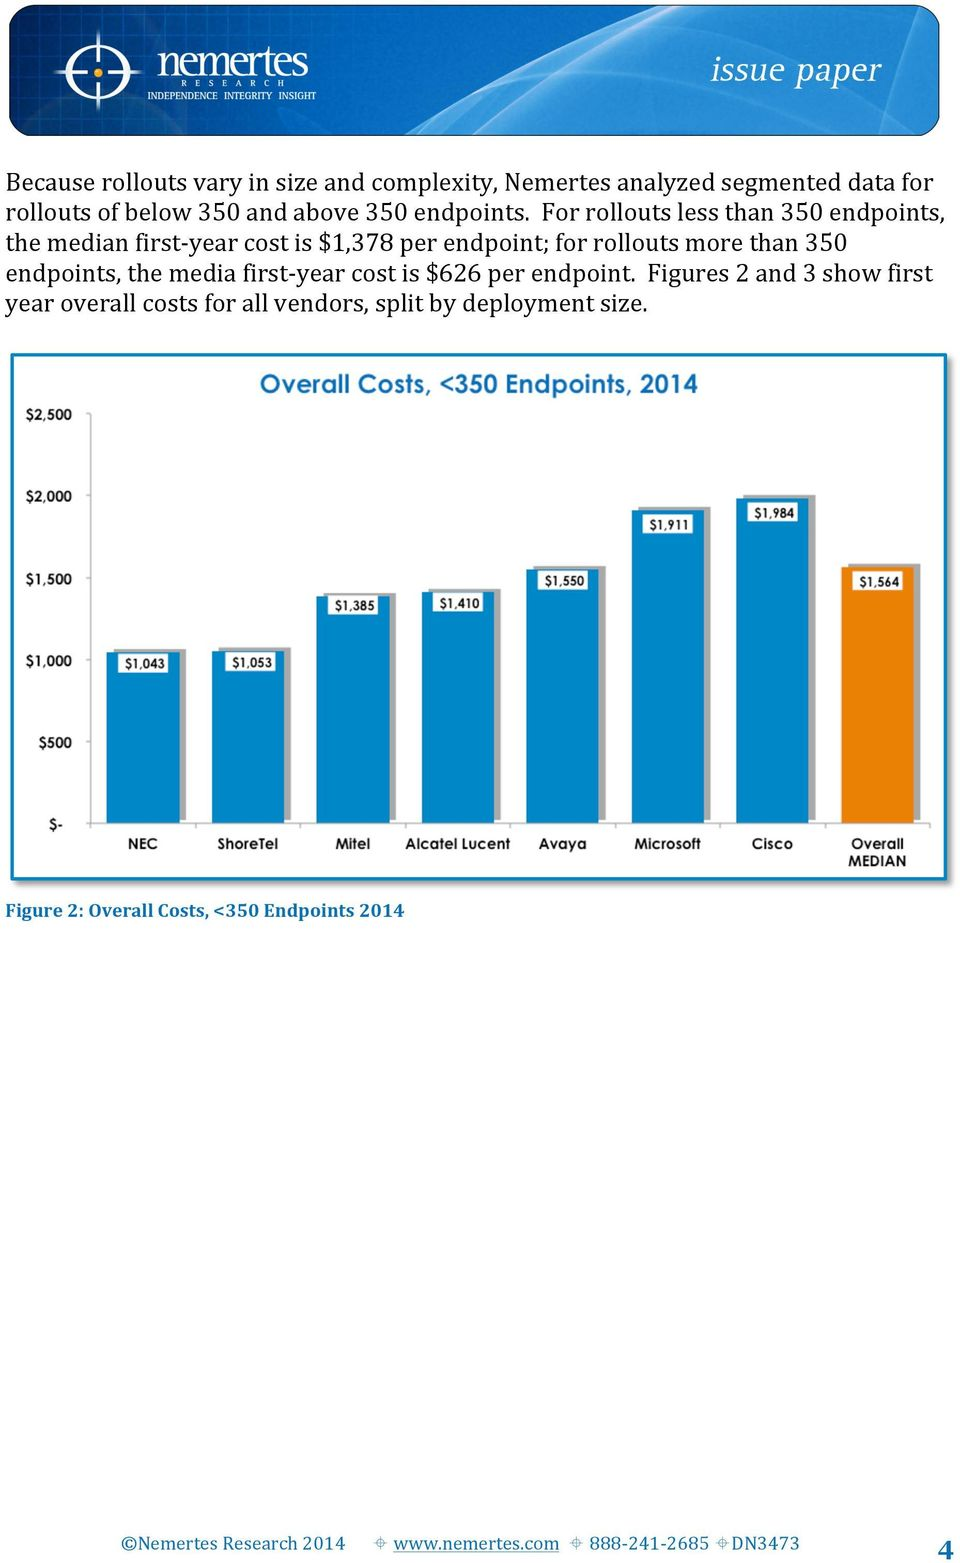 For rollouts less than 350 endpoints, the median first- year cost is $1,378 per endpoint; for rollouts more than 350